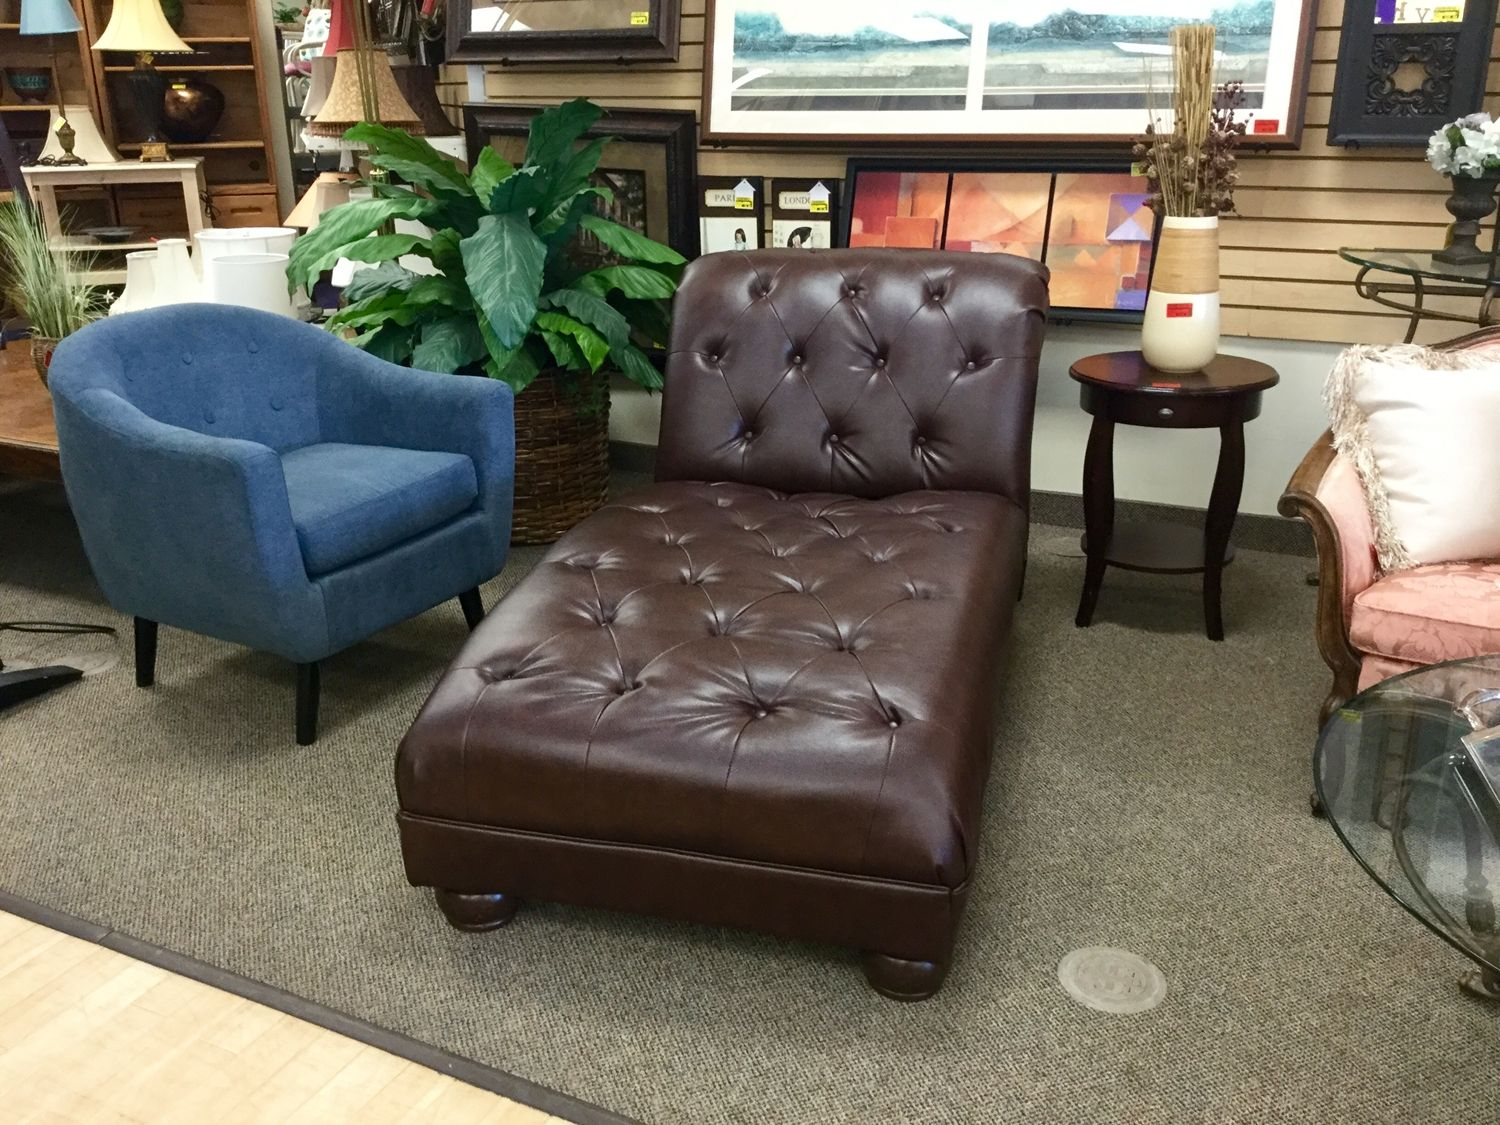 FIND AMAZING DEALS ON NEW & GENTLY USED FURNITURE @ NEW USES: Save $300 on…